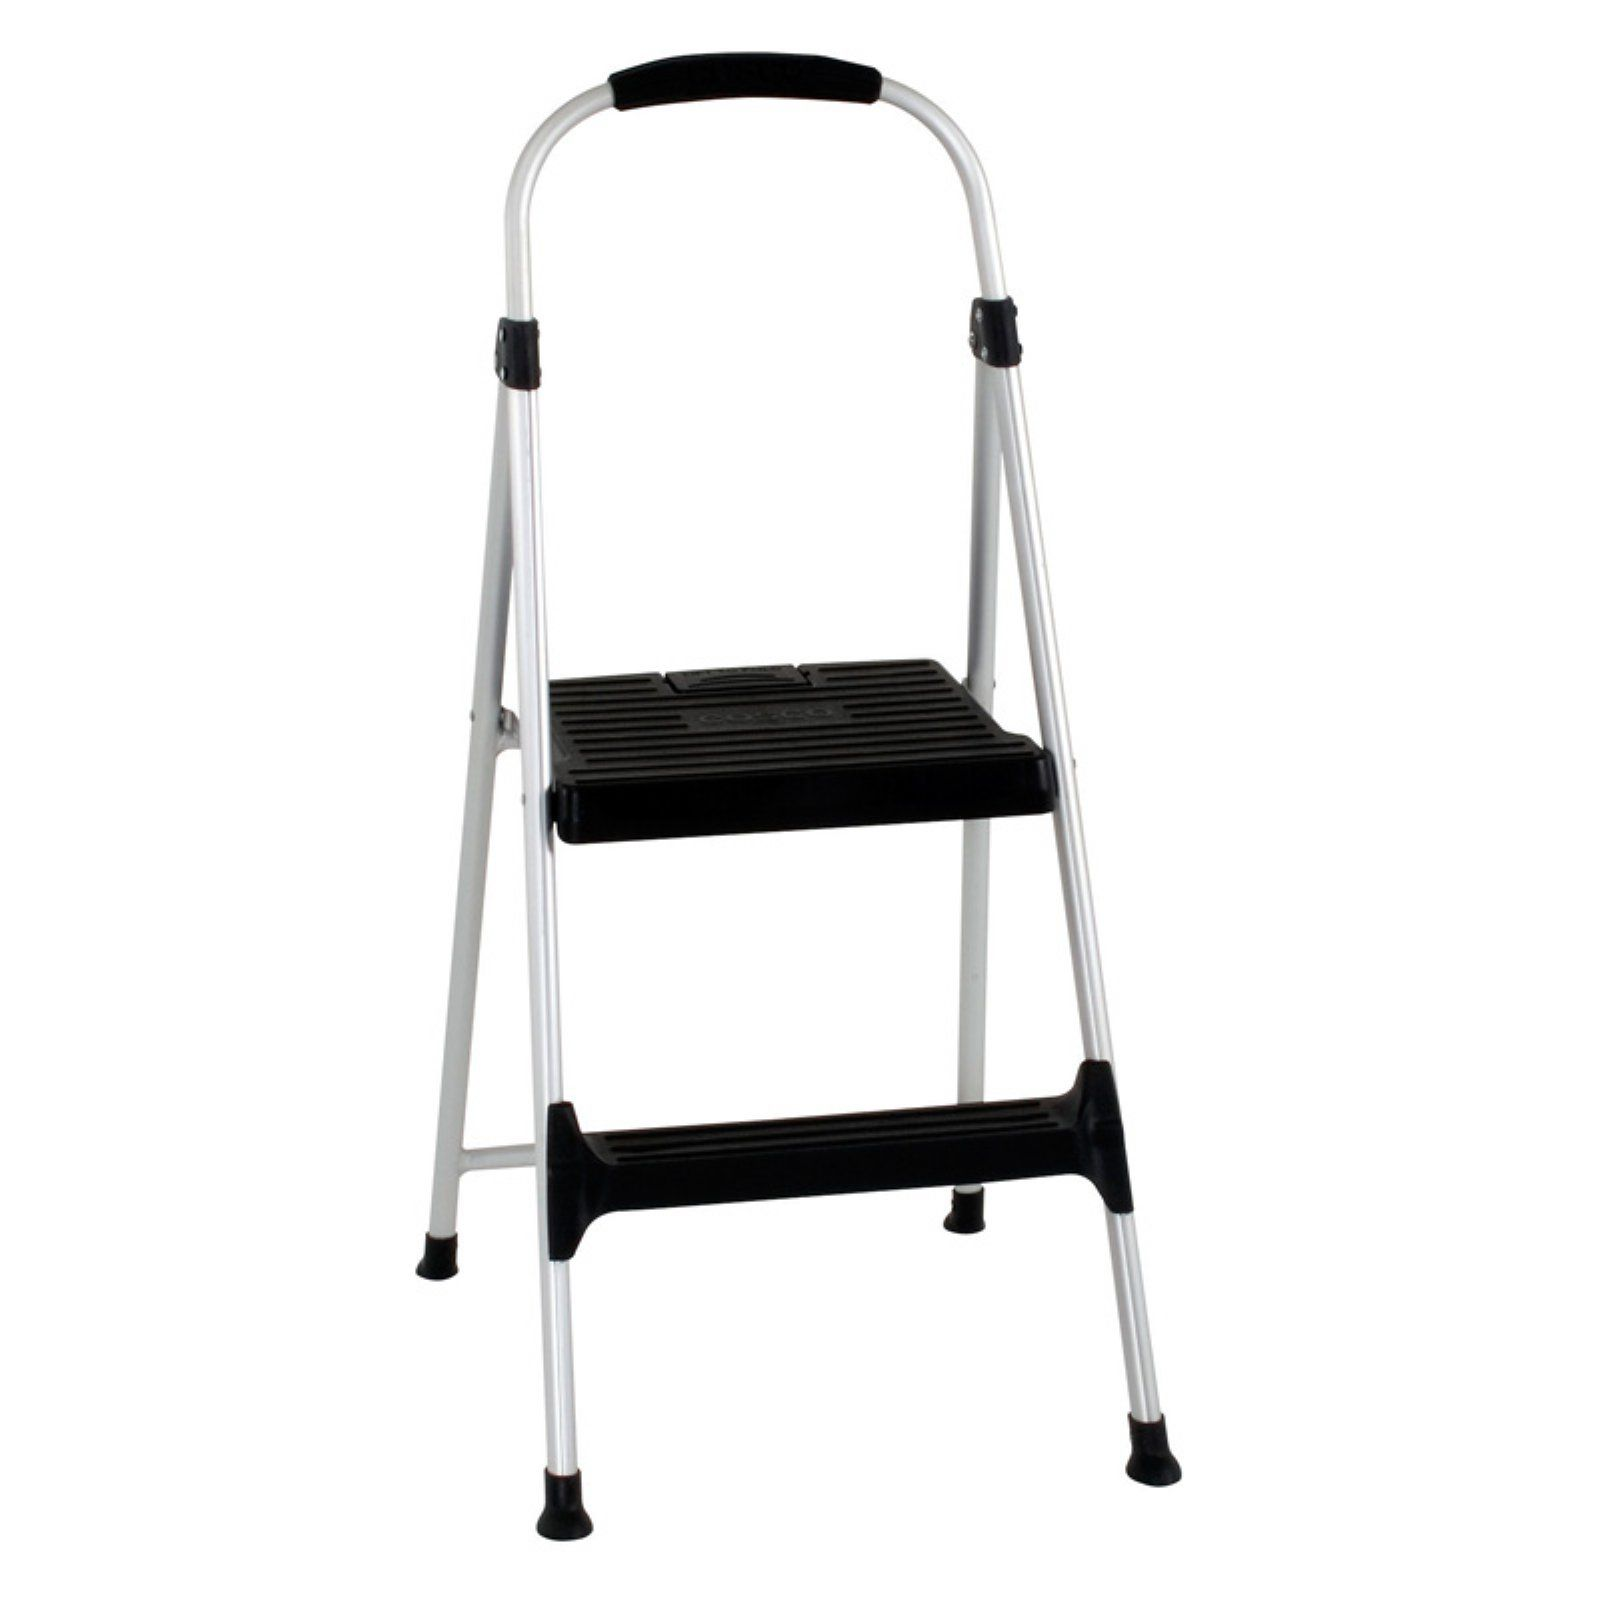 Cosco 2 Step Folding Step Stool With Handle Grip Folding Step